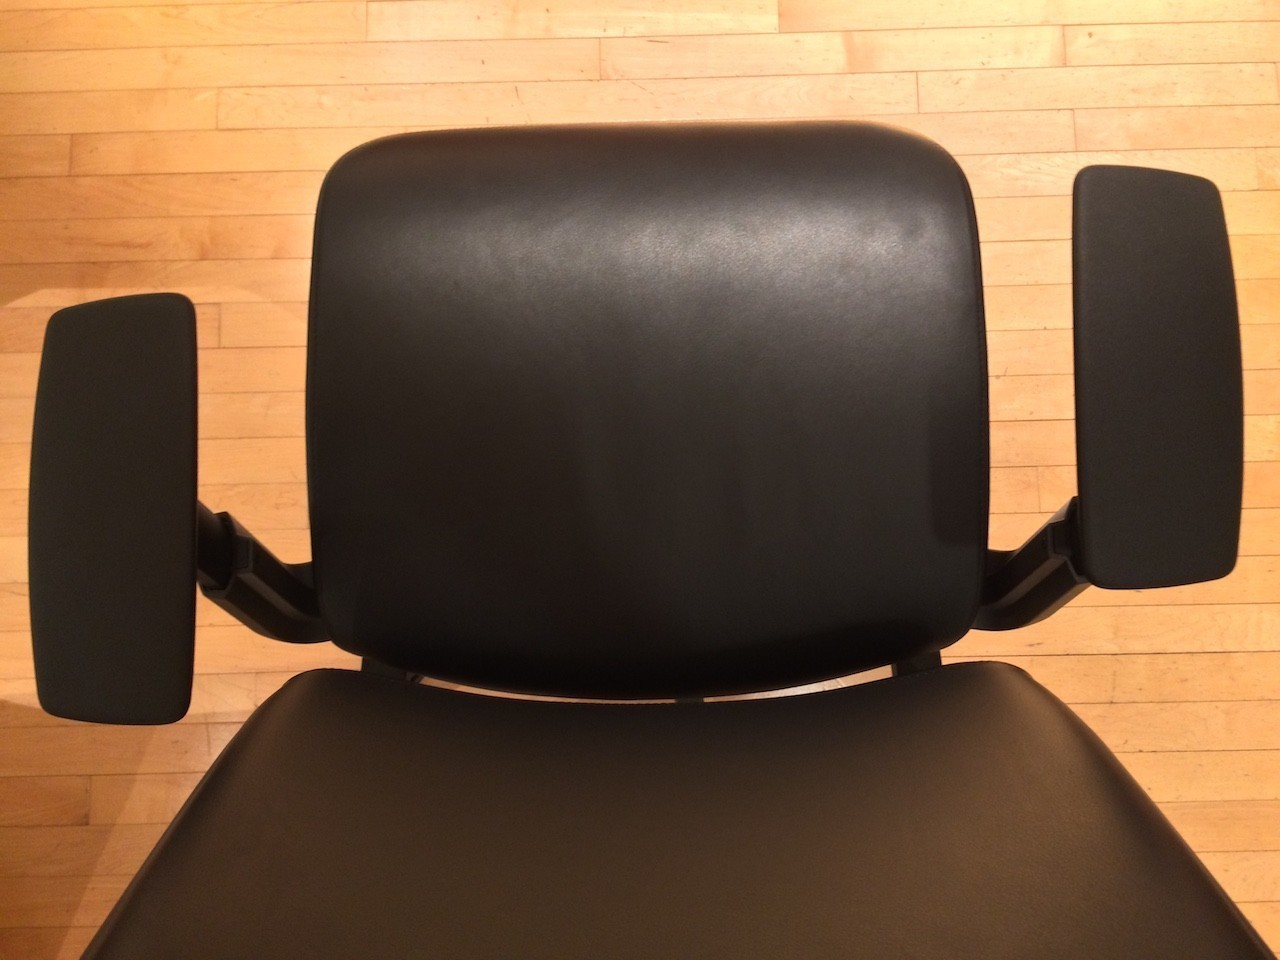 Steelcase Think Chair armrest forward adjustment